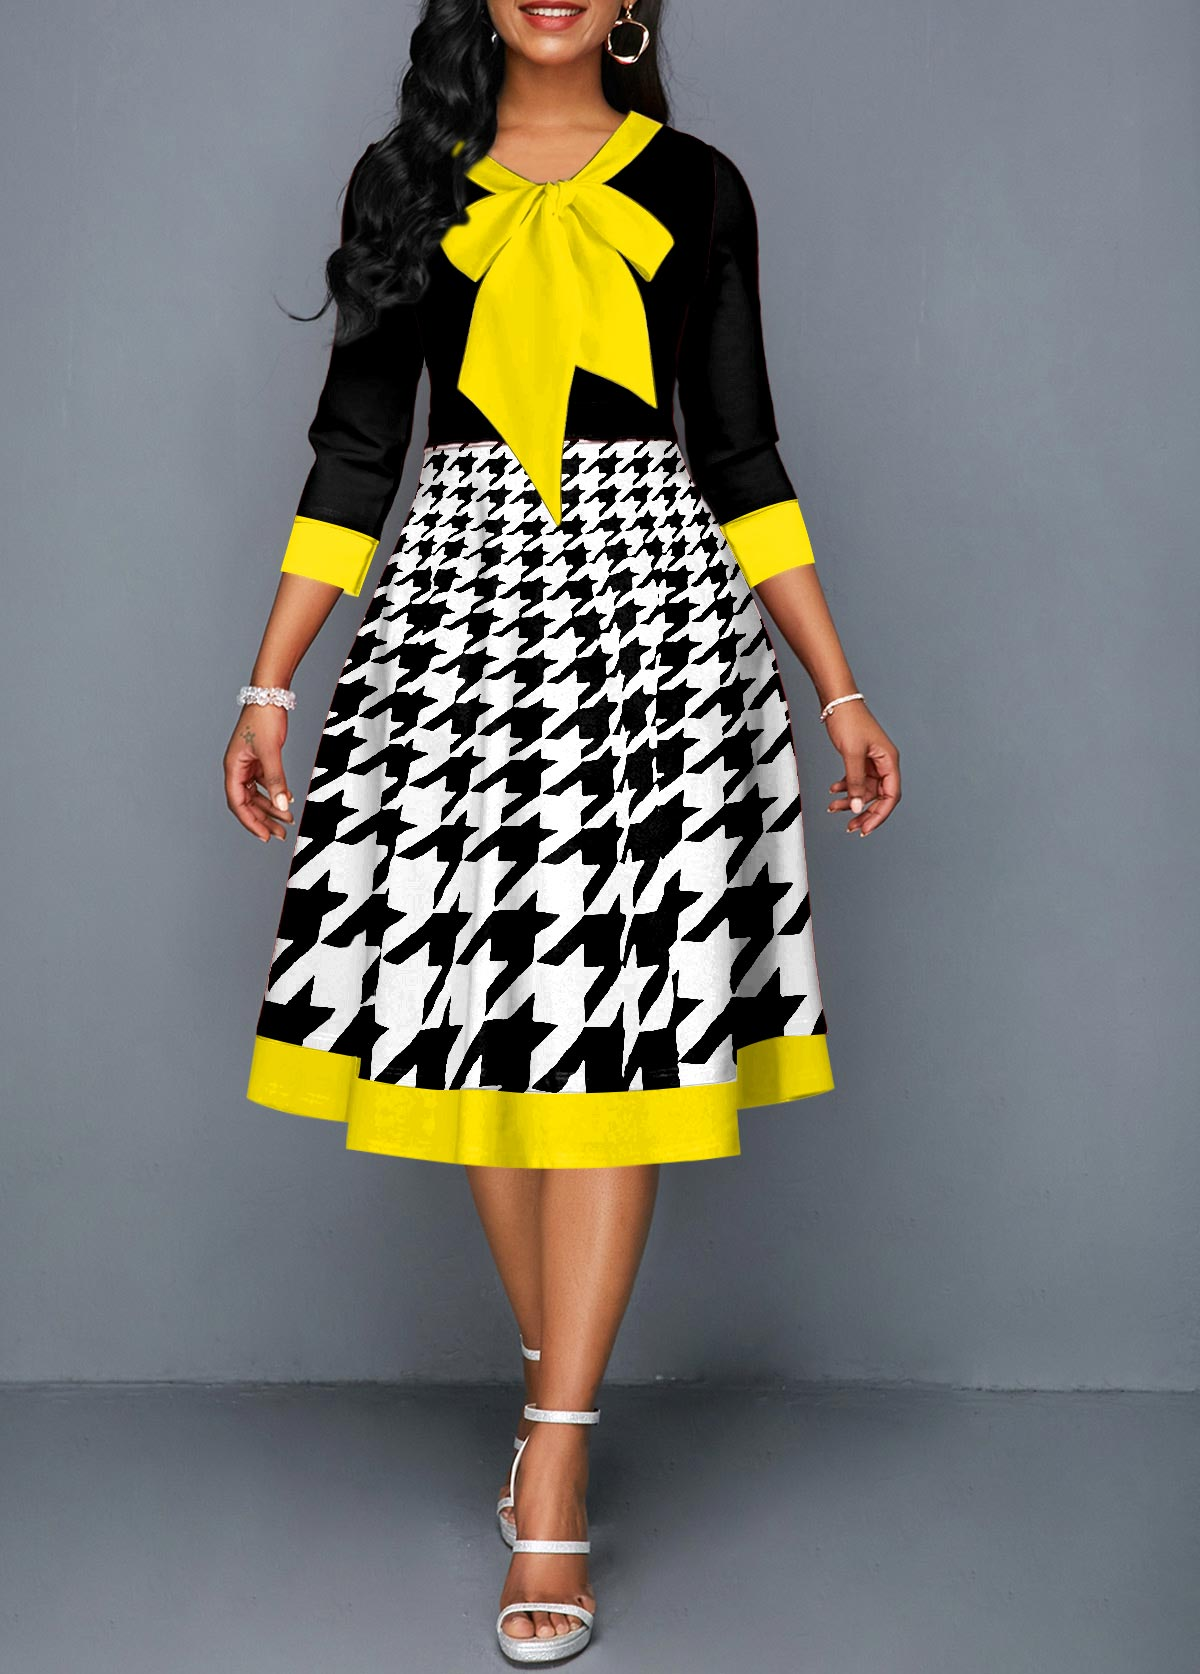 ROTITA Houndstooth Print Bow Collar Contrast Piping Dress